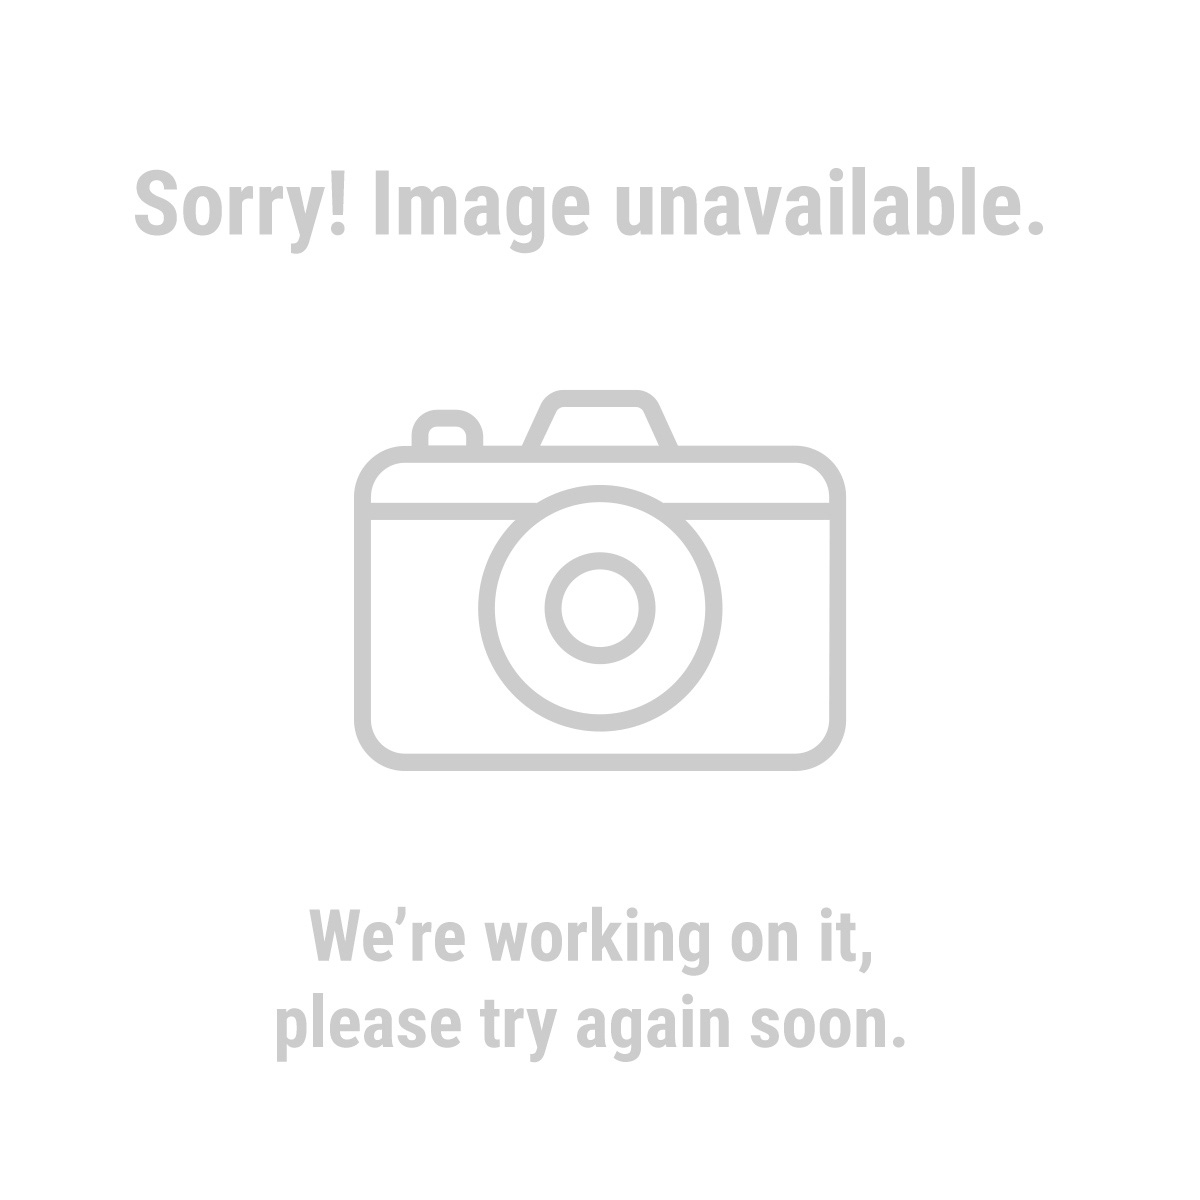 Pittsburgh Automotive 96648 8 Ton Hydraulic Bottle Jack